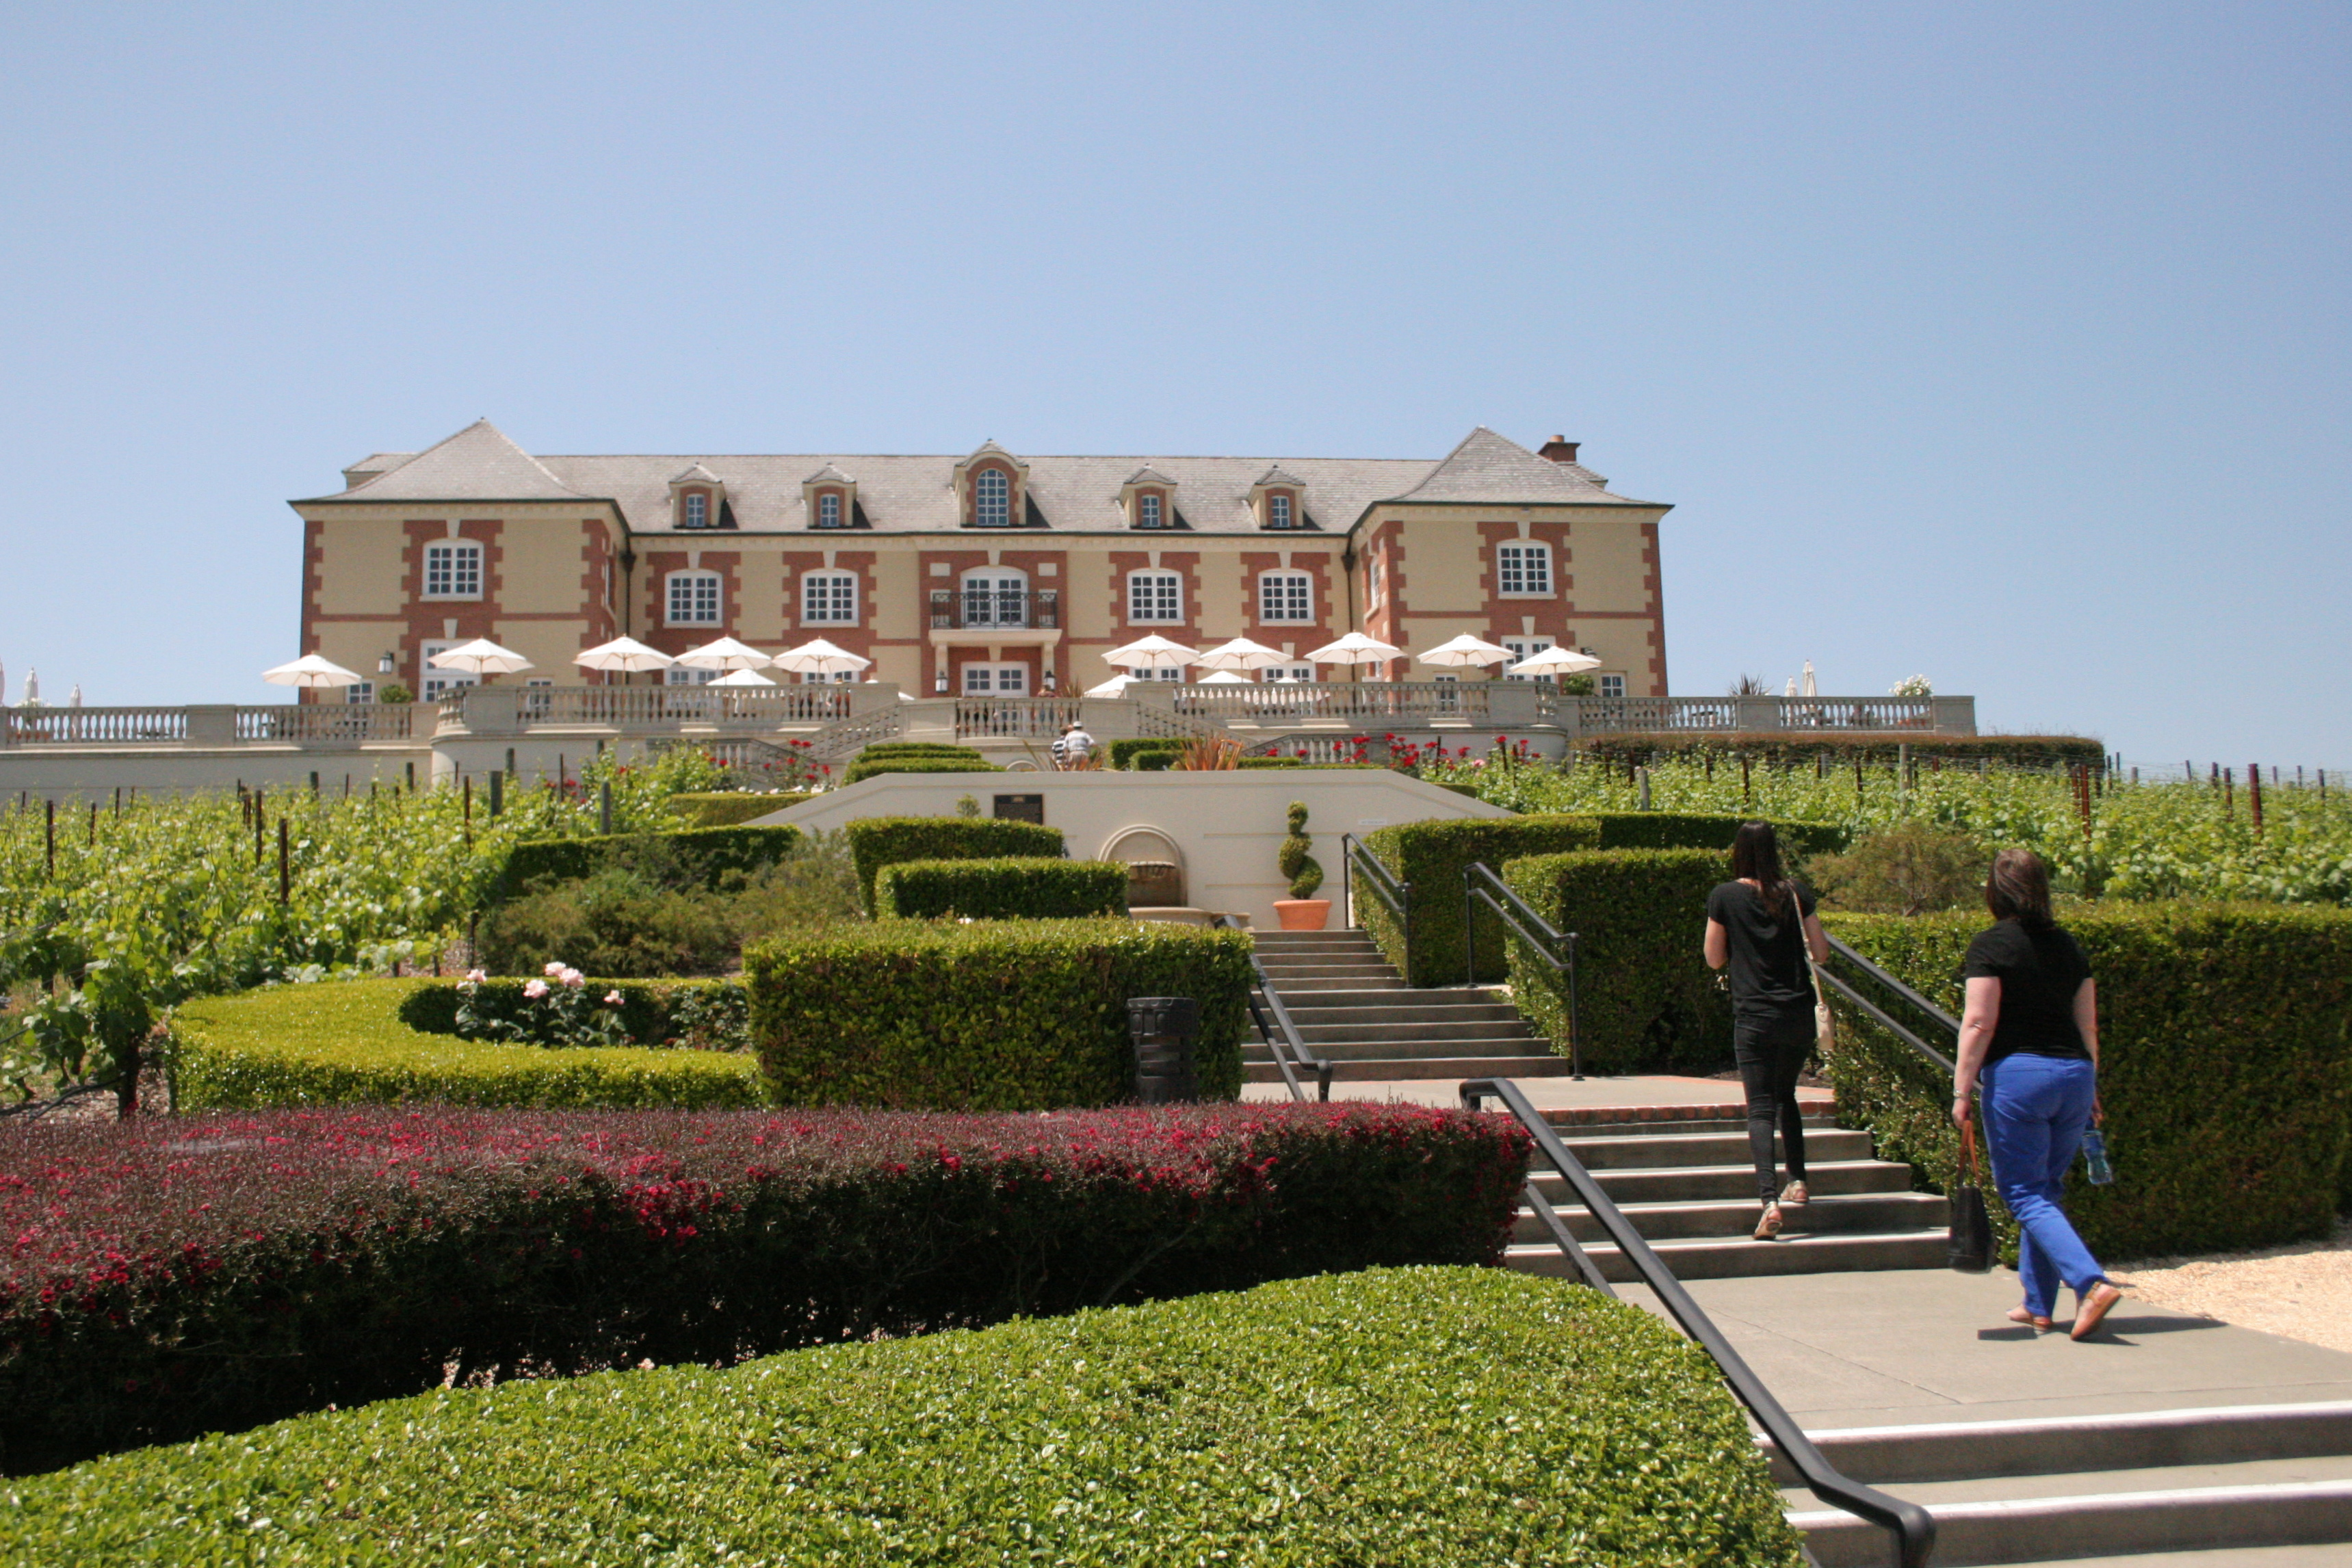 napa valley winery inc Family-owned winery in the napa valley with award-winning wines, weddings,  experiences, artisan deli and picnic grounds.